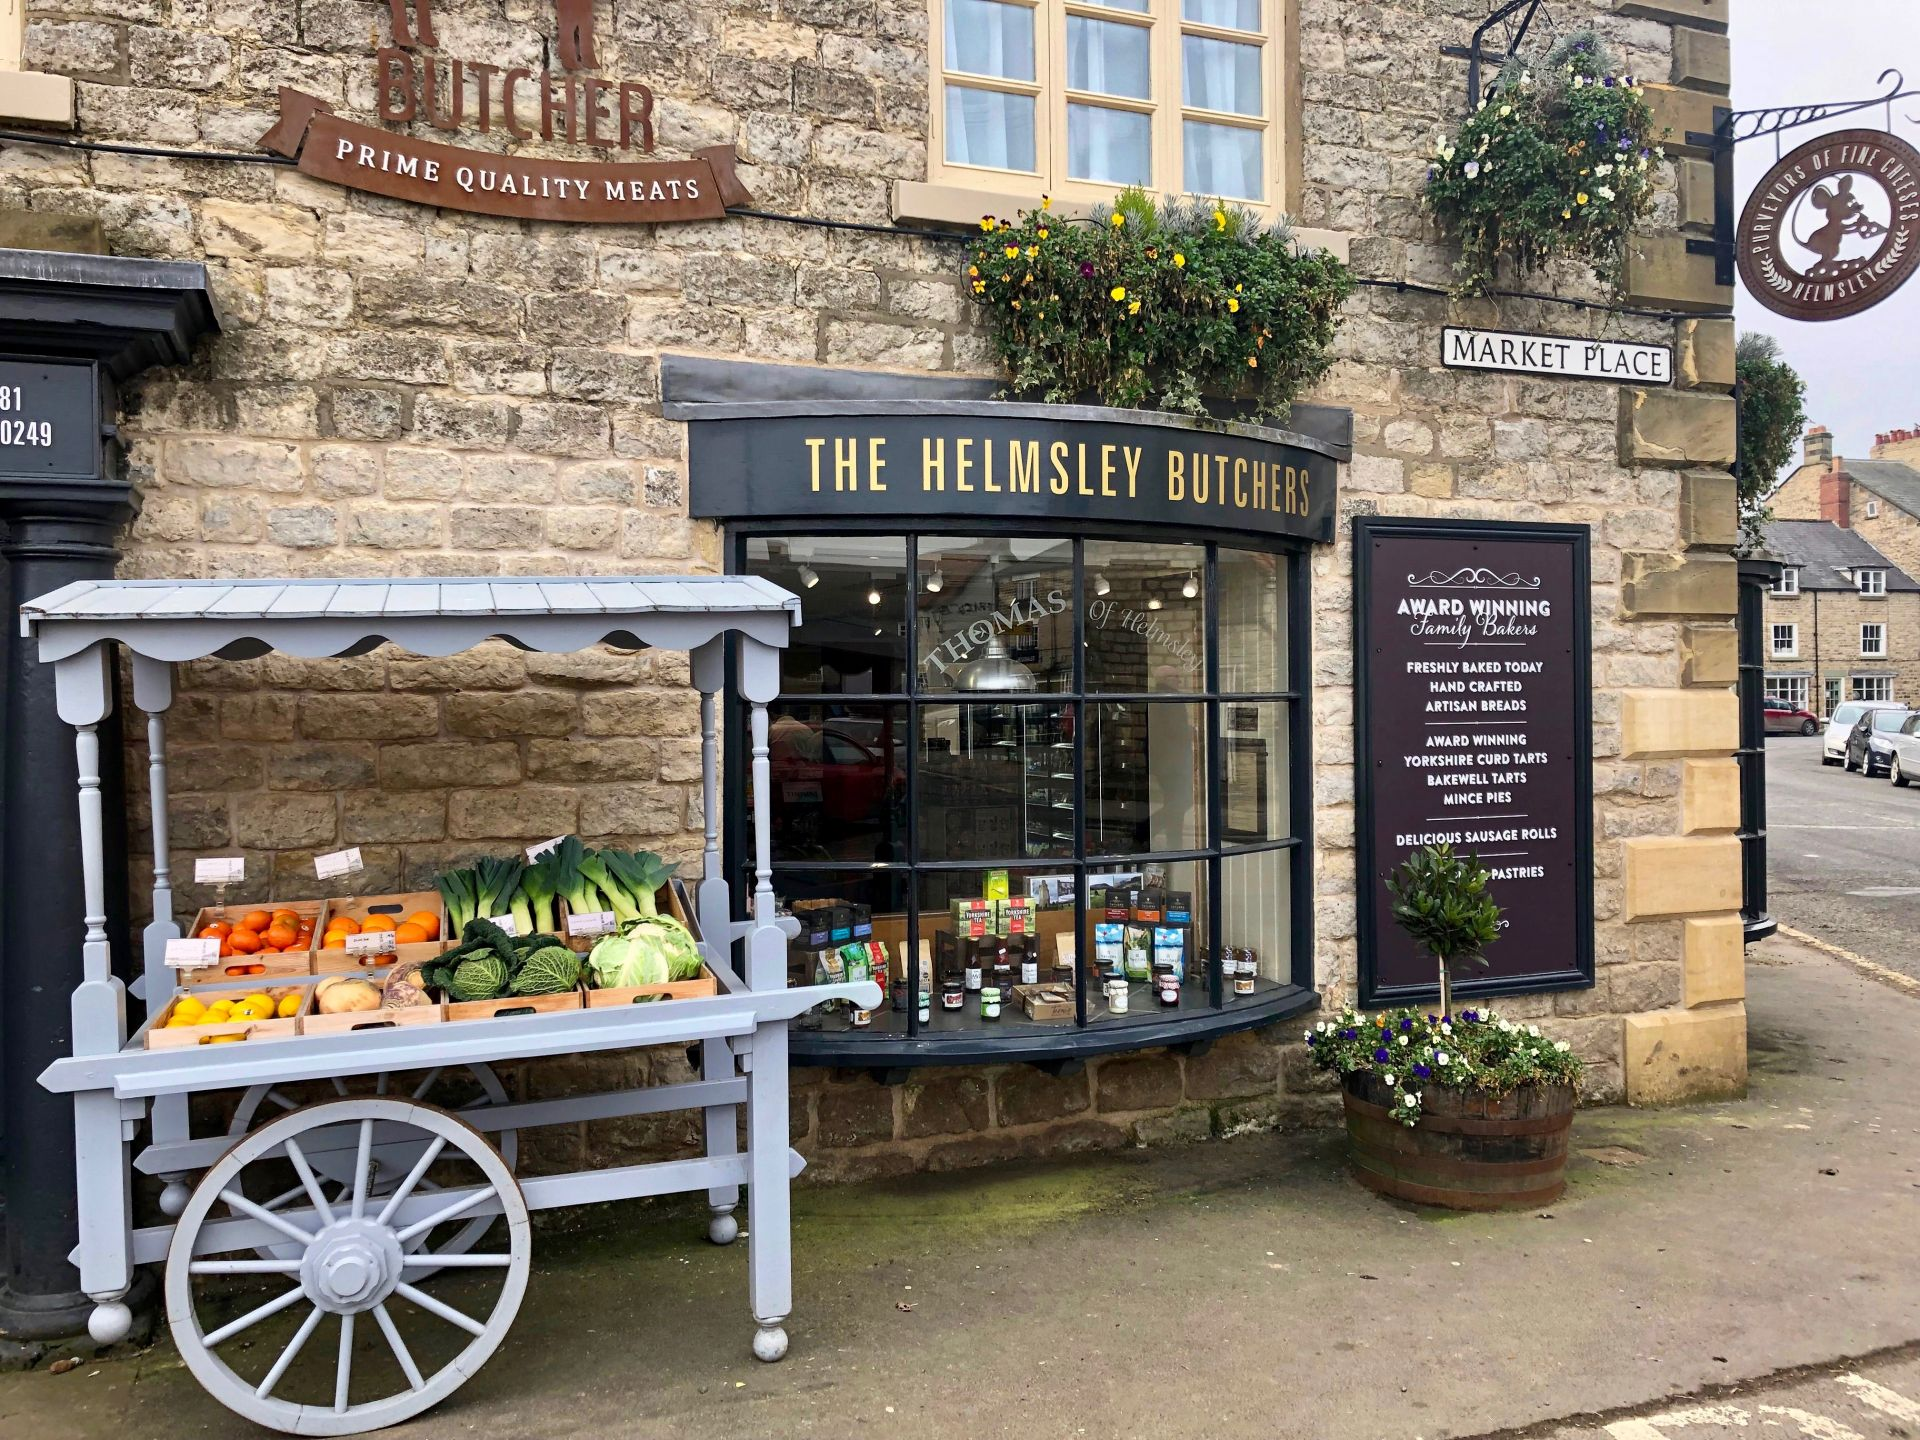 Things To Do In Helmsley, North Yorkshire